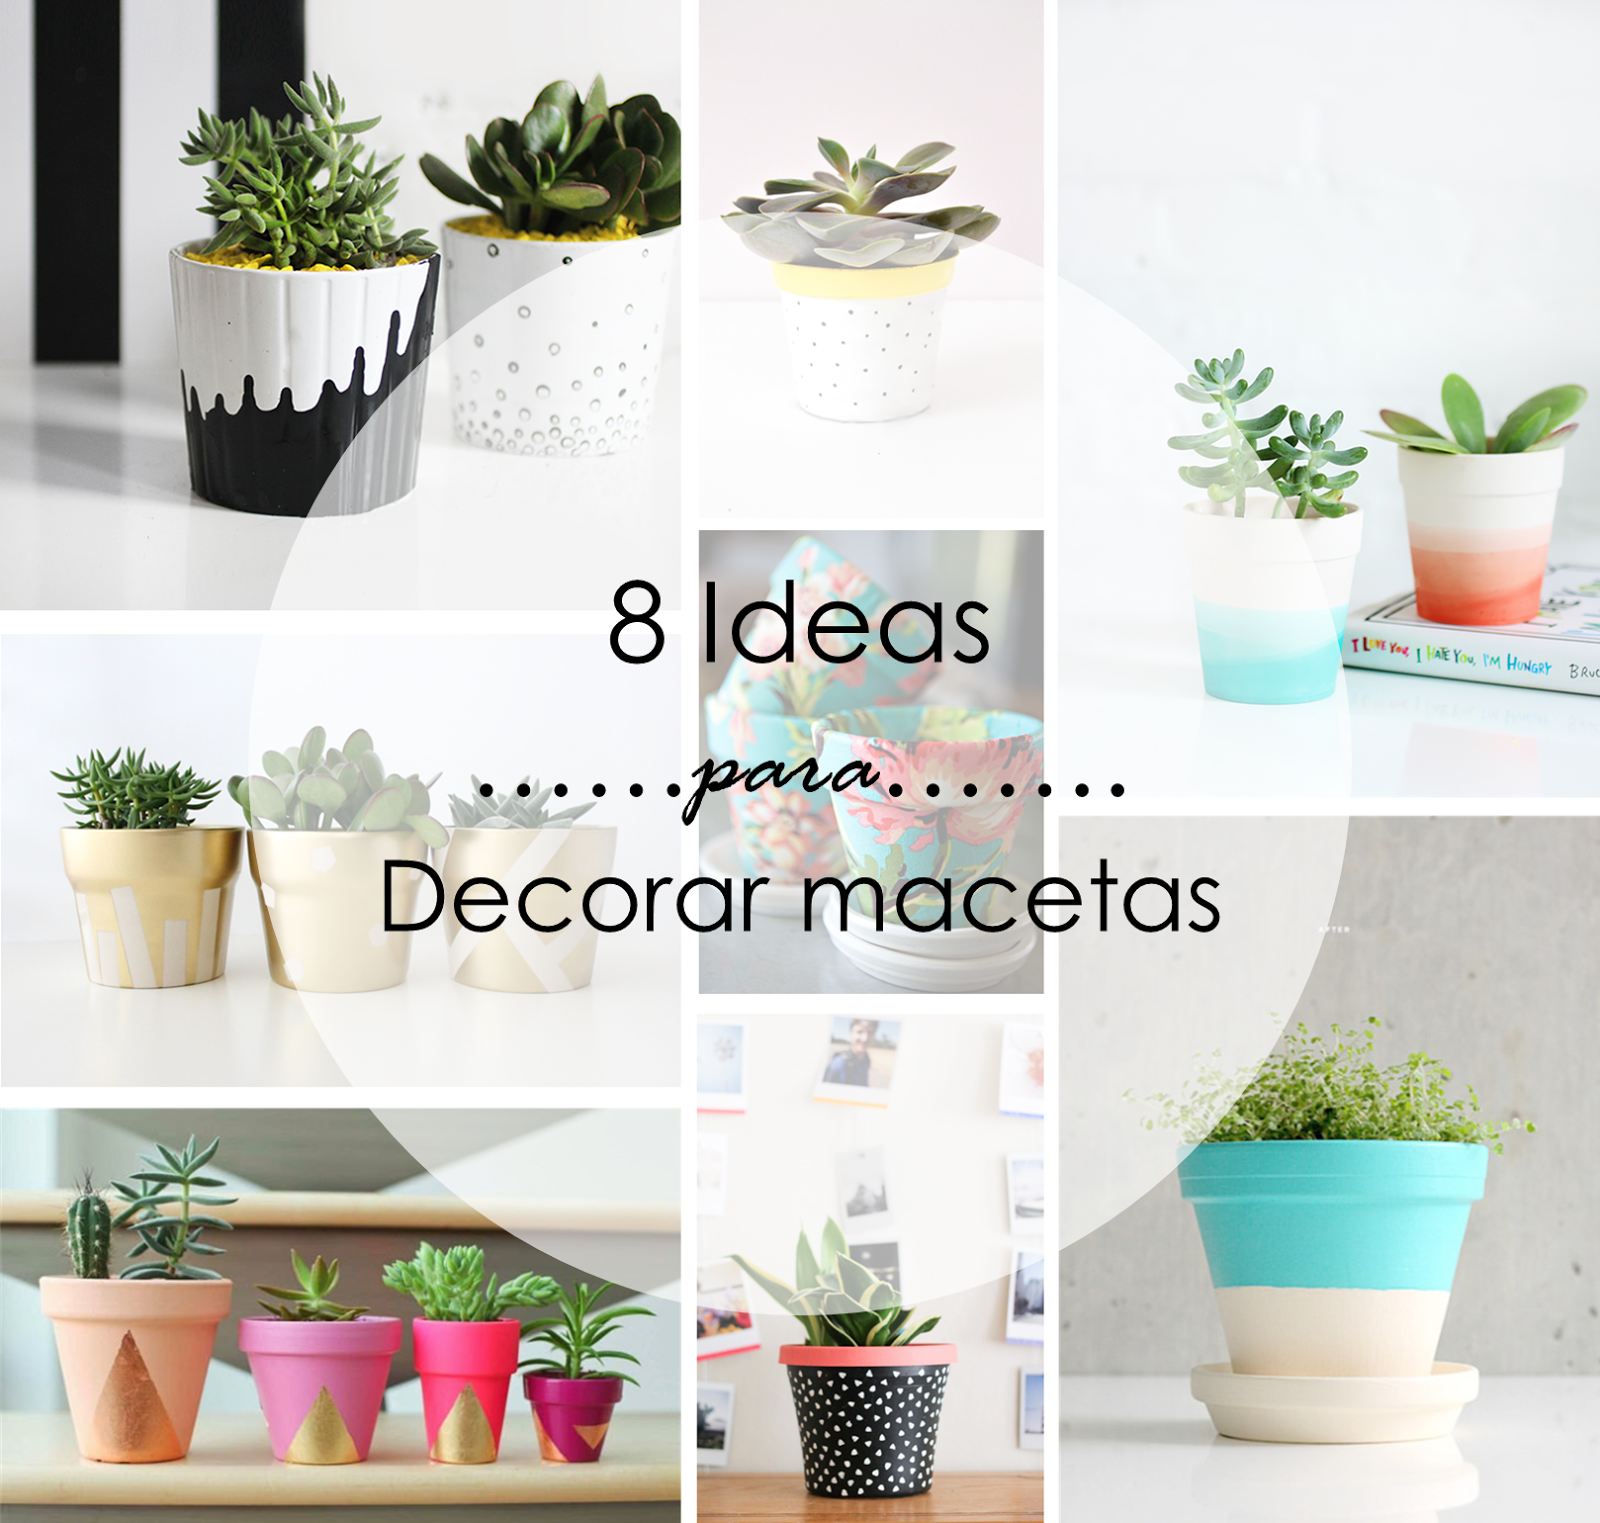 Decoraci n f cil 8 ideas para decorar macetas for Adornos para decorar